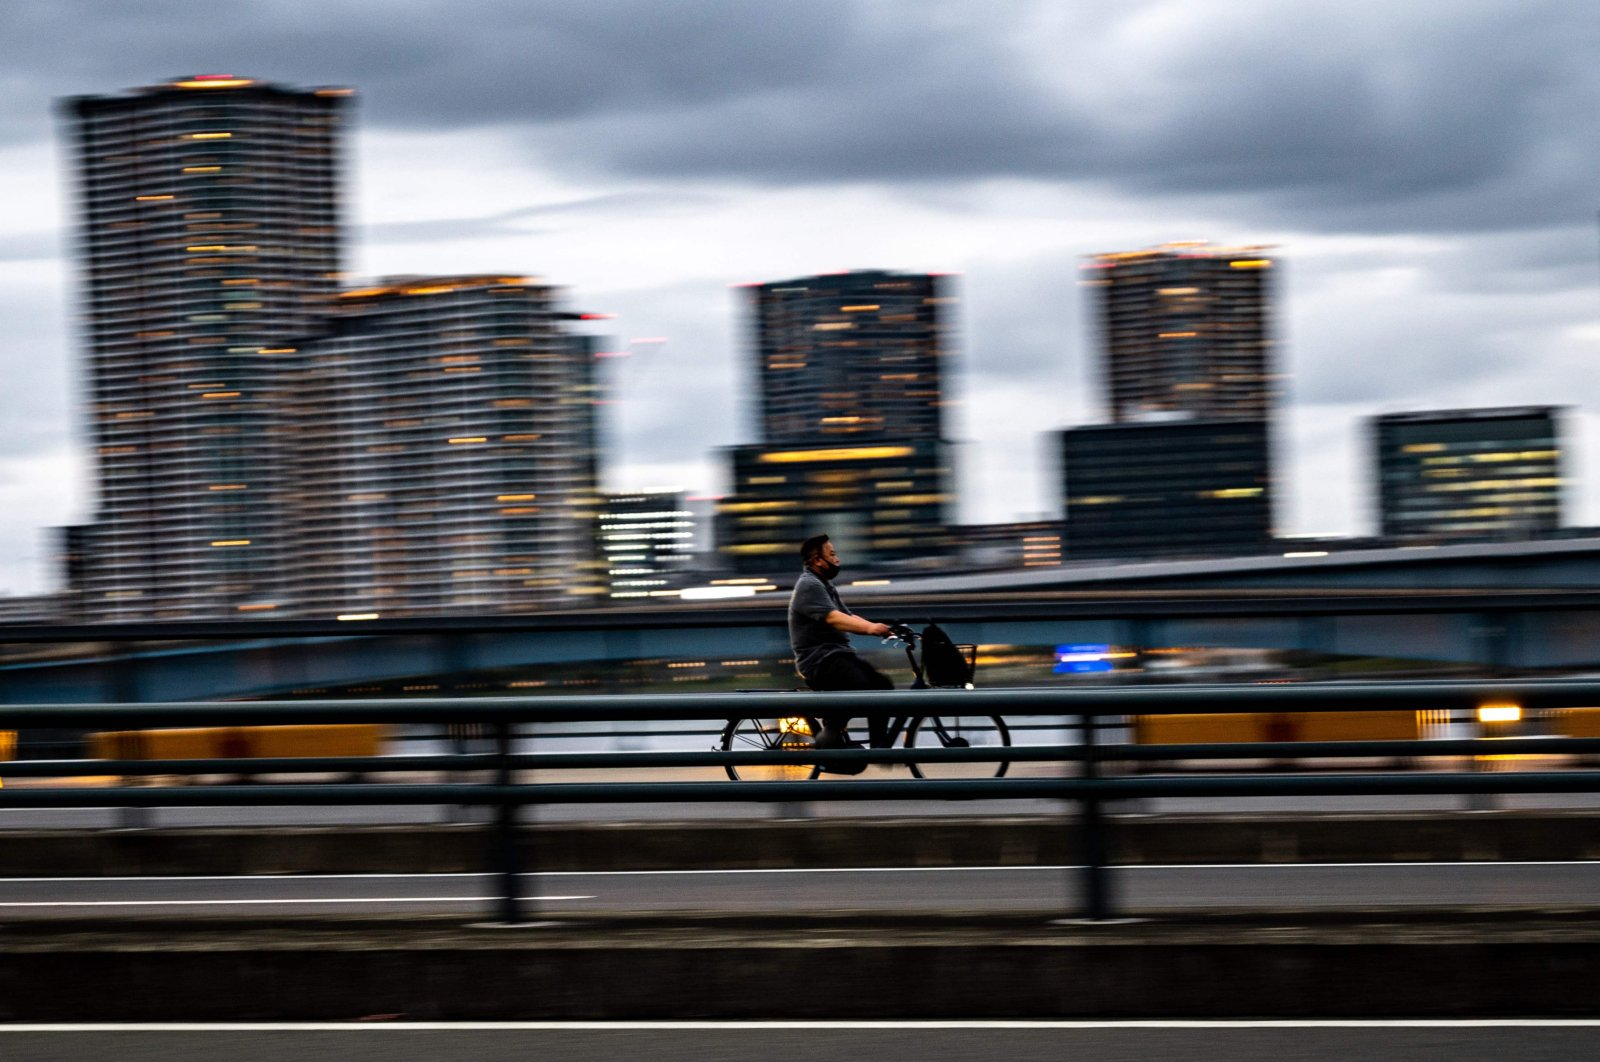 A man rides a bicycle on a footbridge near Tokyo's Toyosu district on October 6, 2021. (AFP Photo)